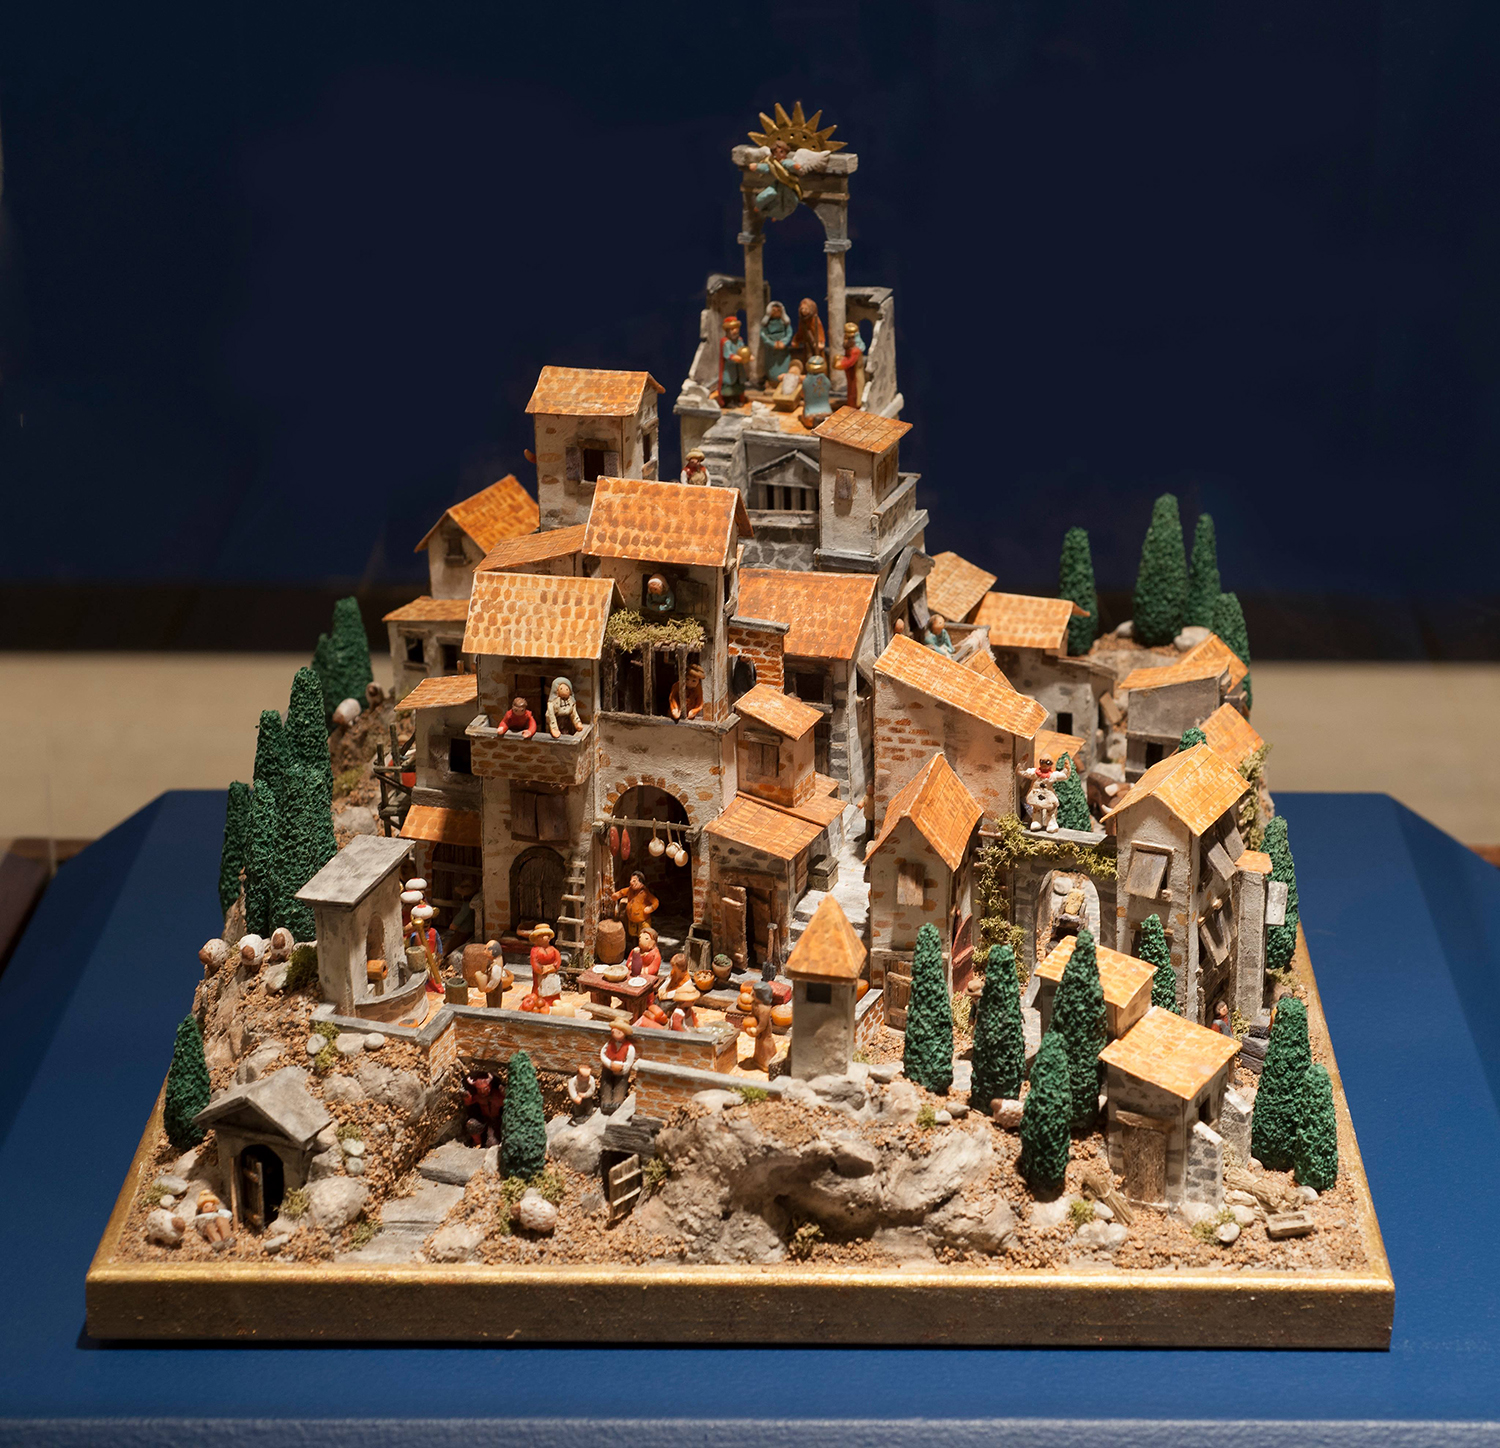 Figure 3: Piccolo Presepe  (Italian for small Nativity scene), made by R. Michael Palan, is set within Roman ruins at the top of an Italian village. The scene includes more than sixty tiny figures. Photo by R. Michael Palan.